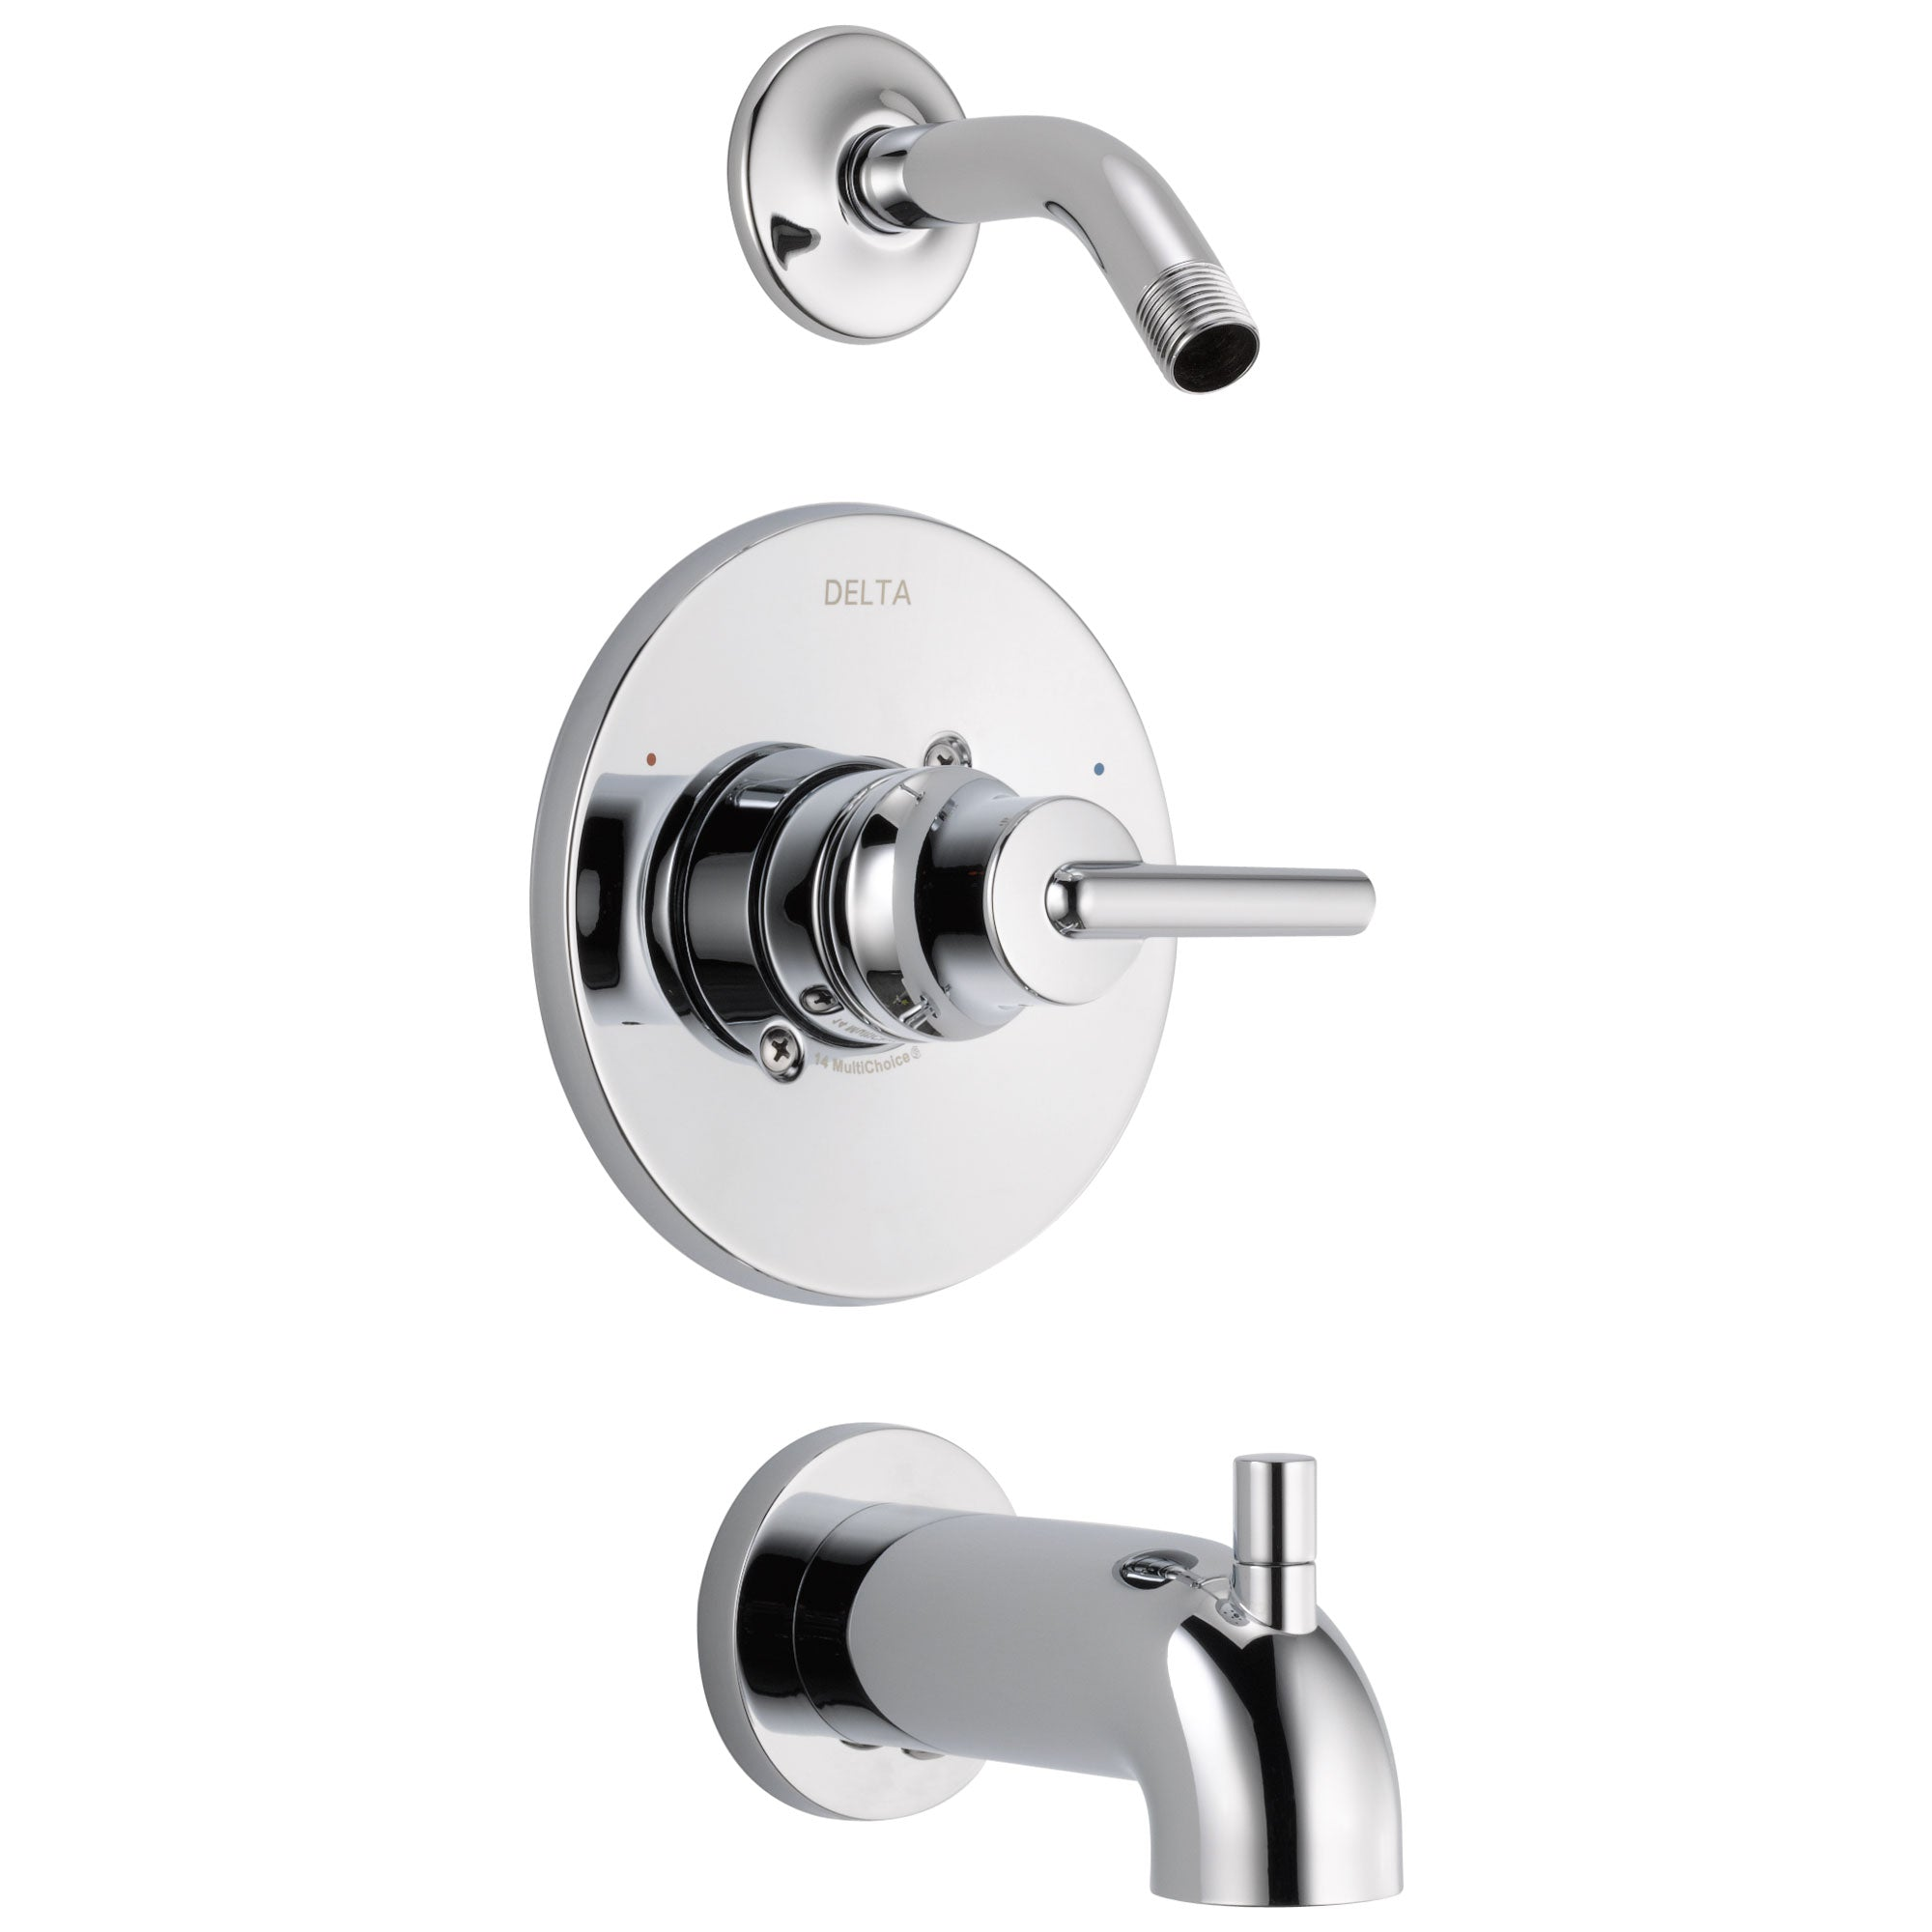 Delta Trinsic Collection Chrome Single Handle Monitor 14 Tub and Shower Combination Faucet Trim Kit - Less Showerhead Includes Valve with Stops D1997V